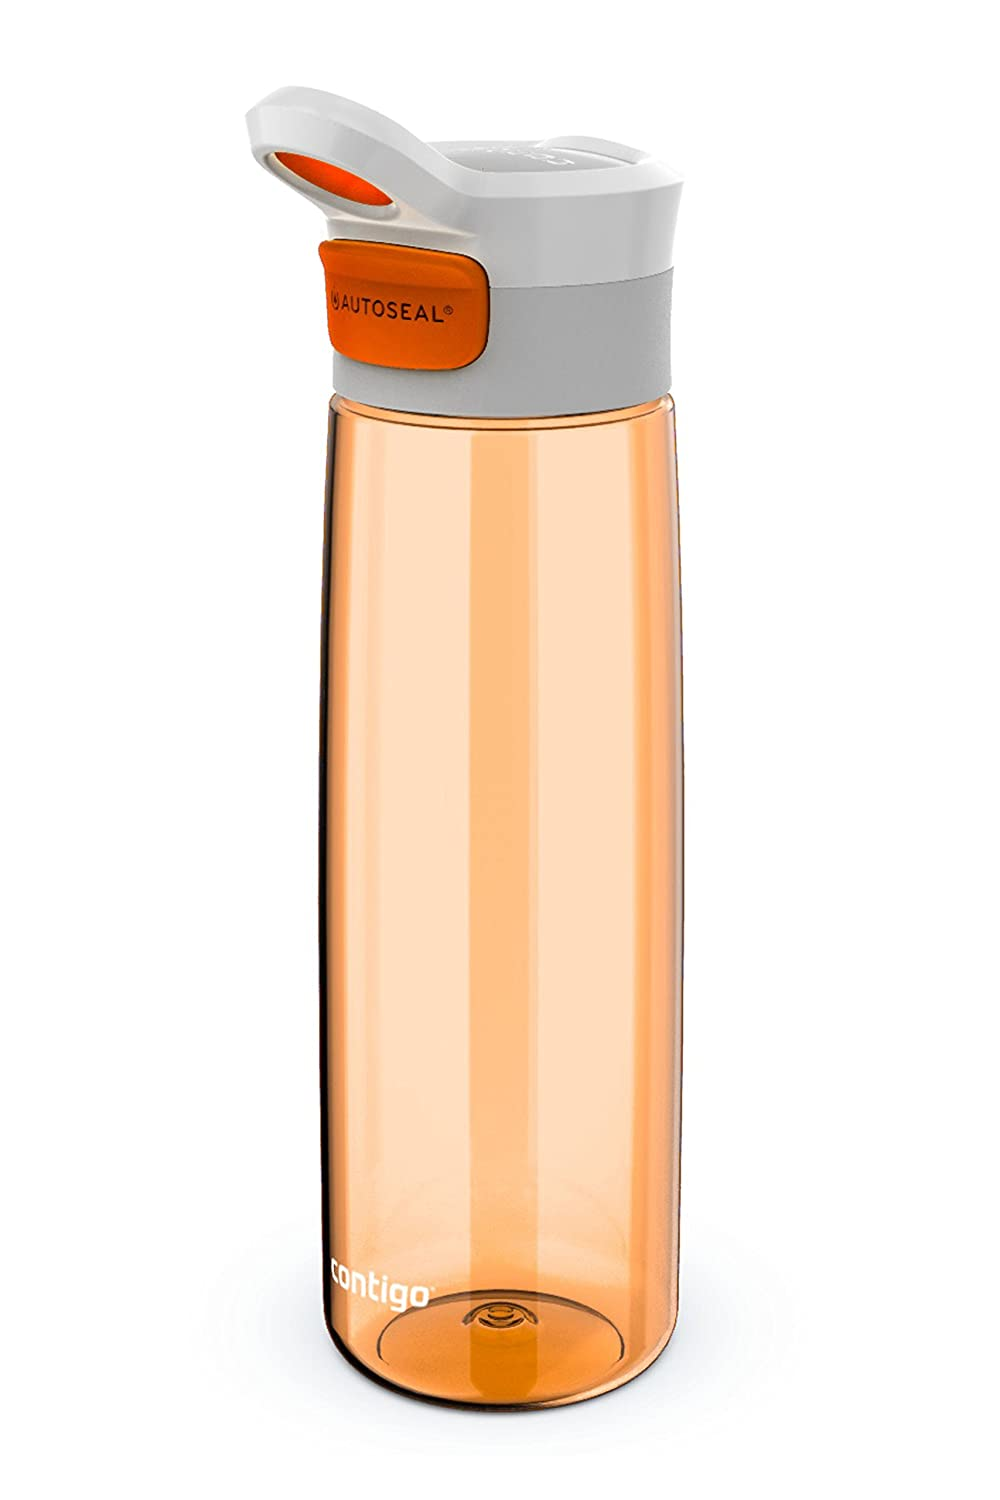 Contigo Grace - Botella de agua con dispositivo antigoteo, color naranja, talla 750 ml 1405158